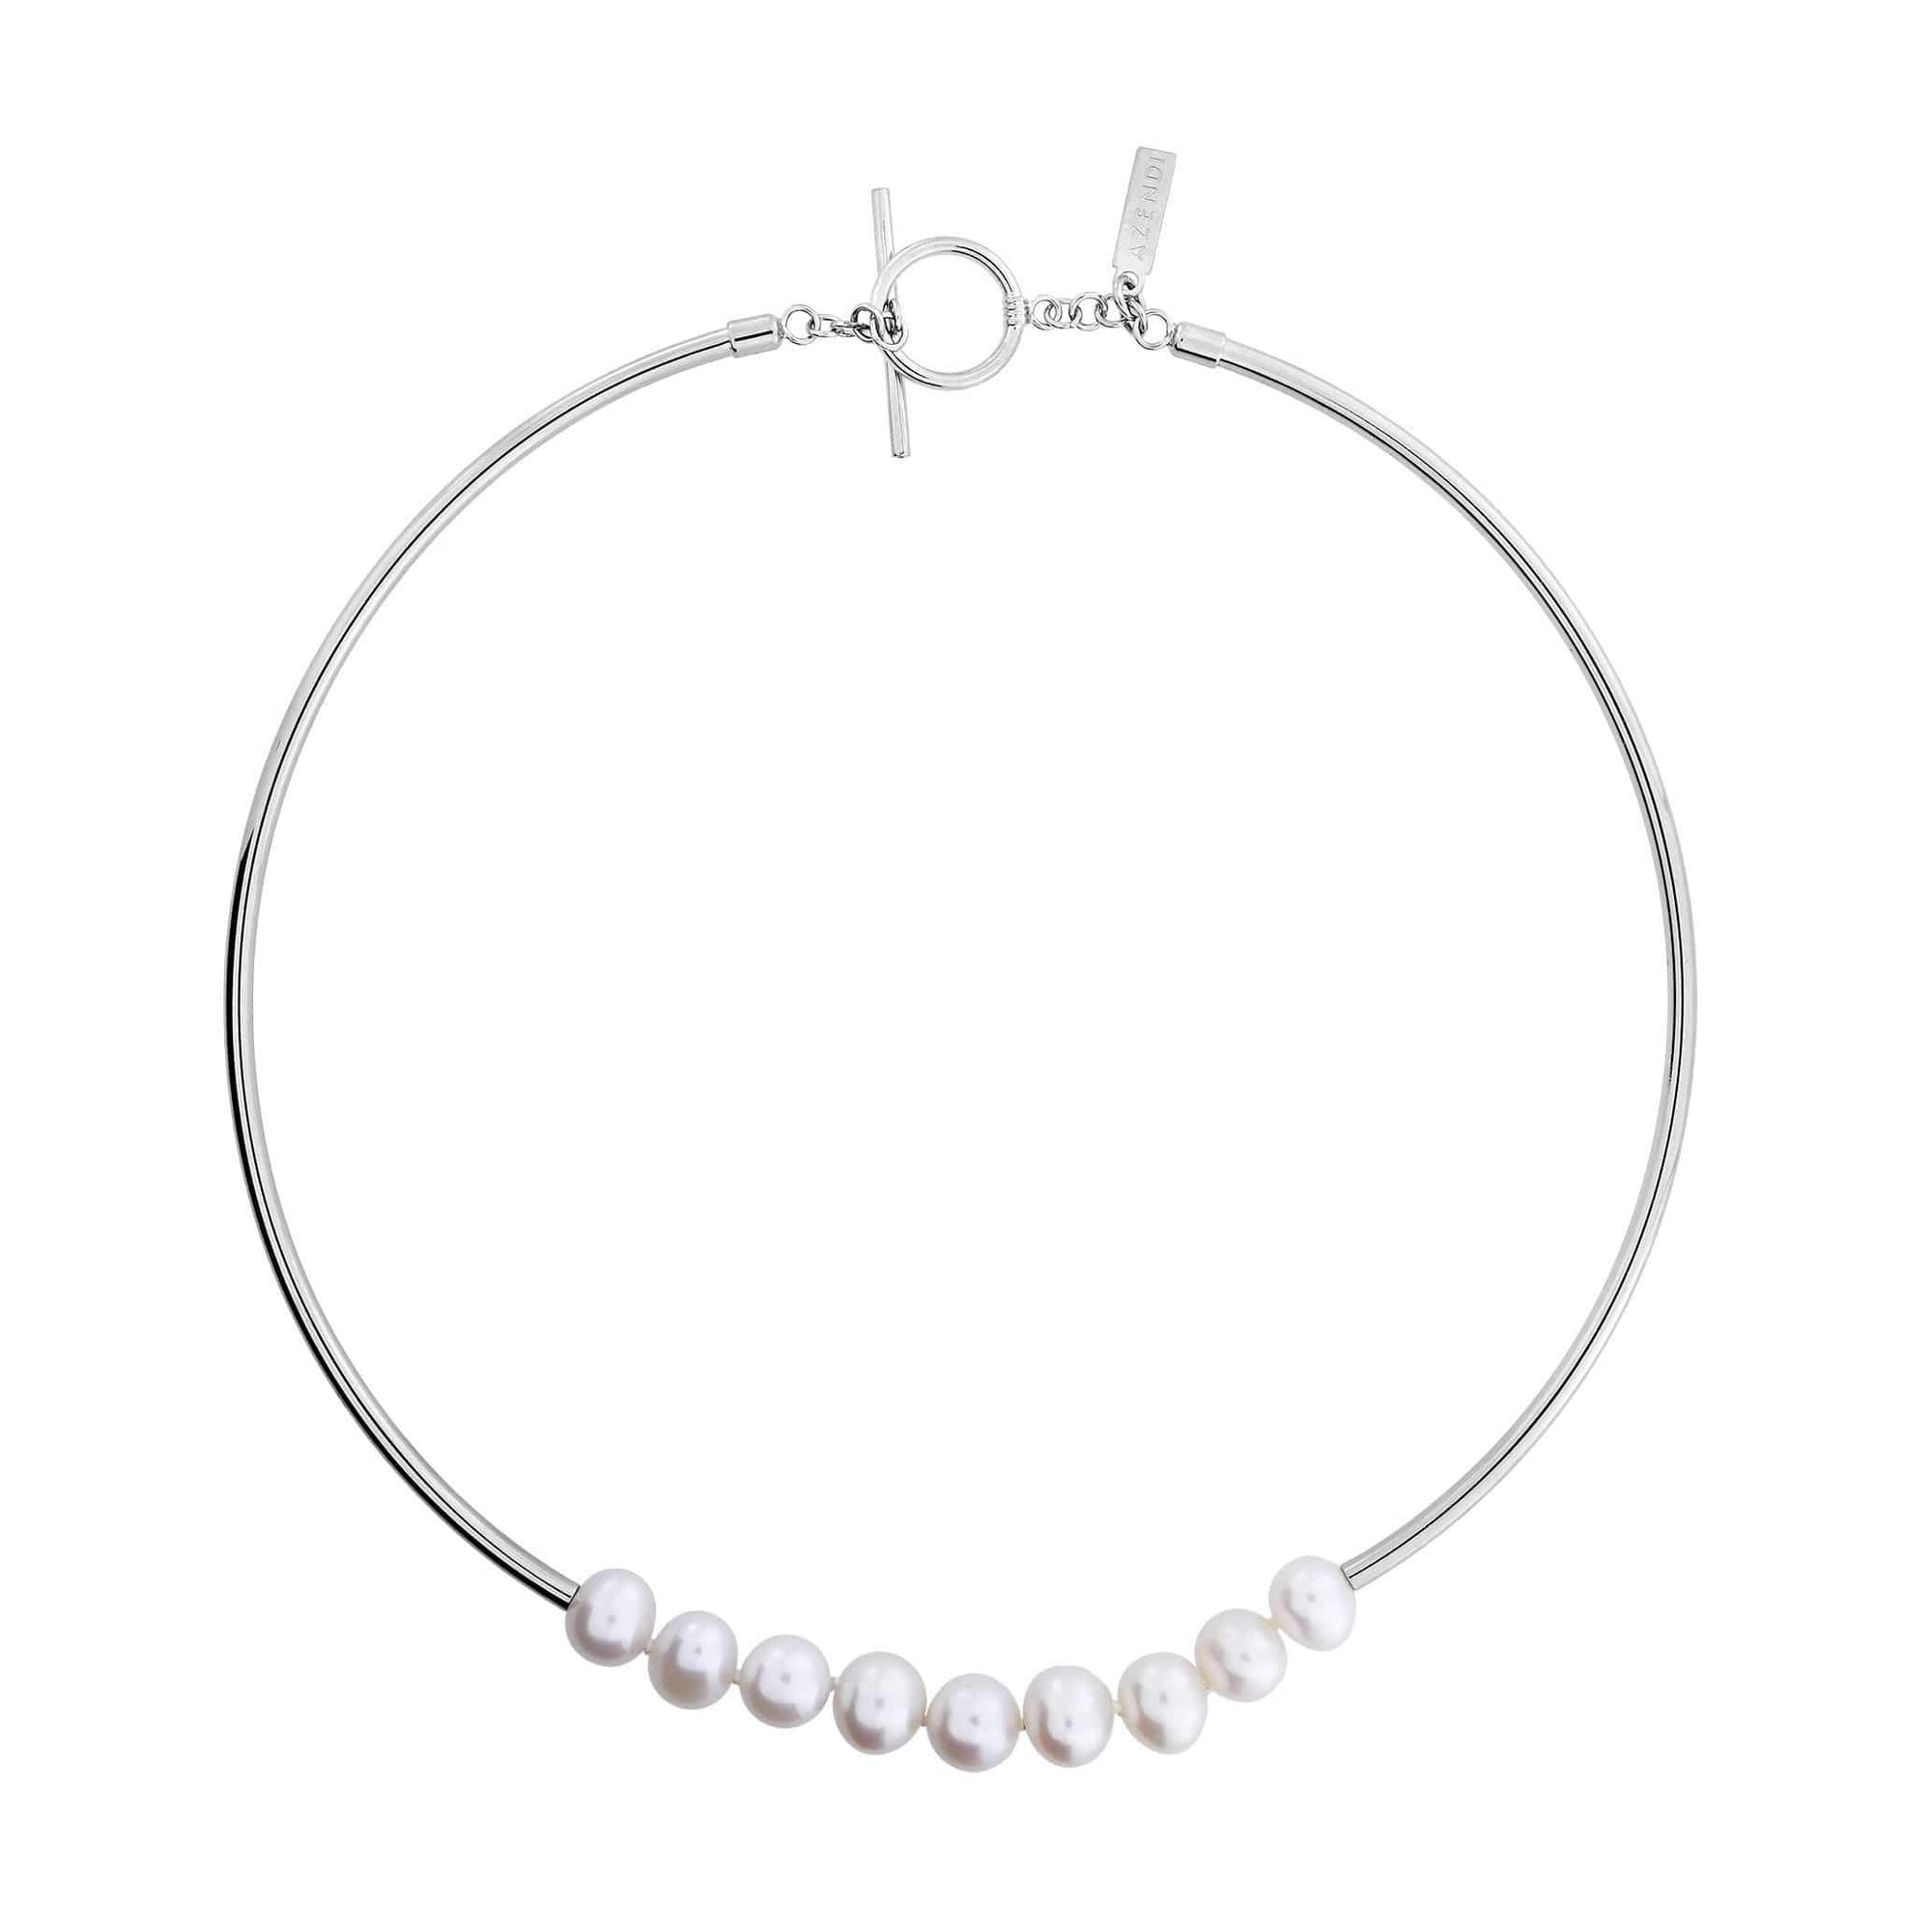 Freshwater Pearls T-Bar Necklace